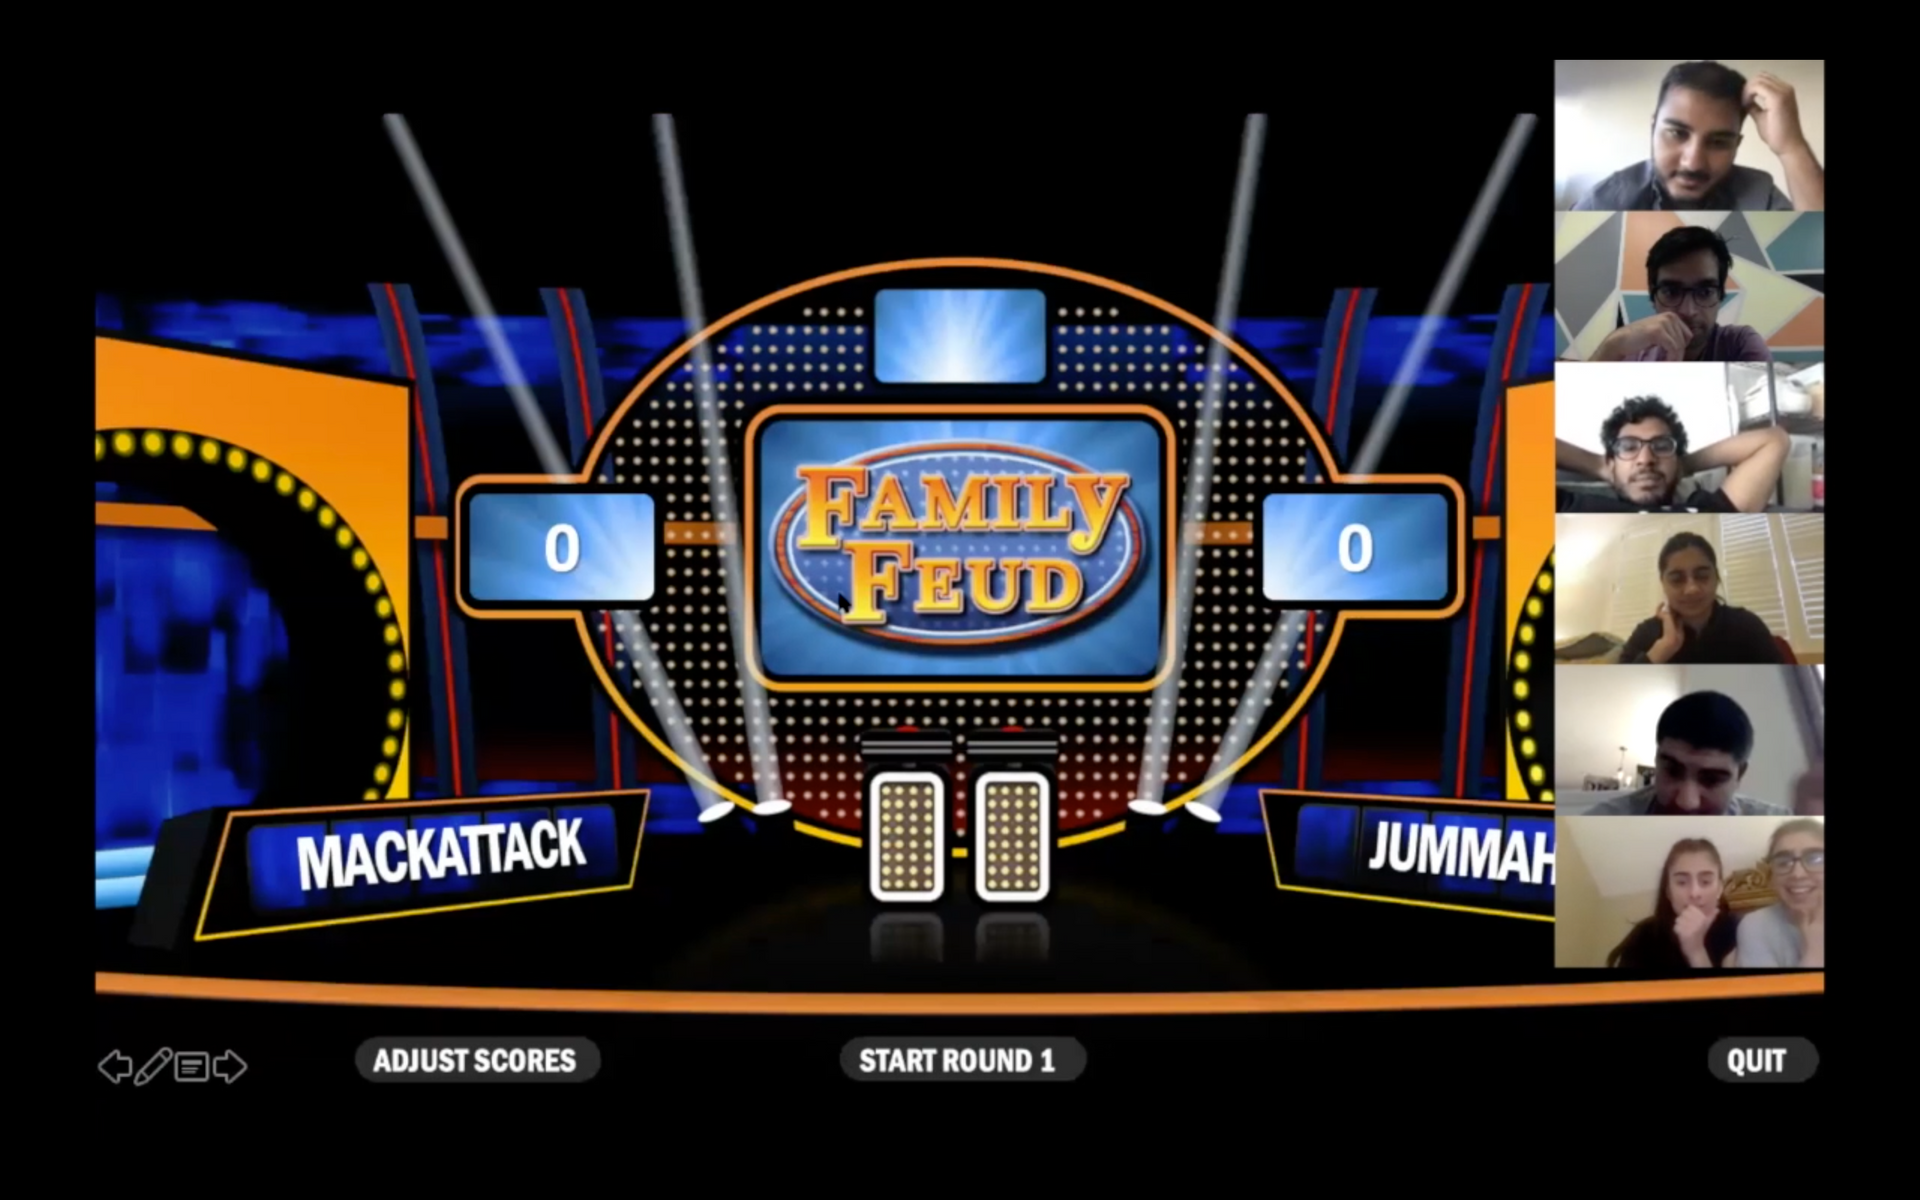 Online Office Olympics participants playing Family Feud